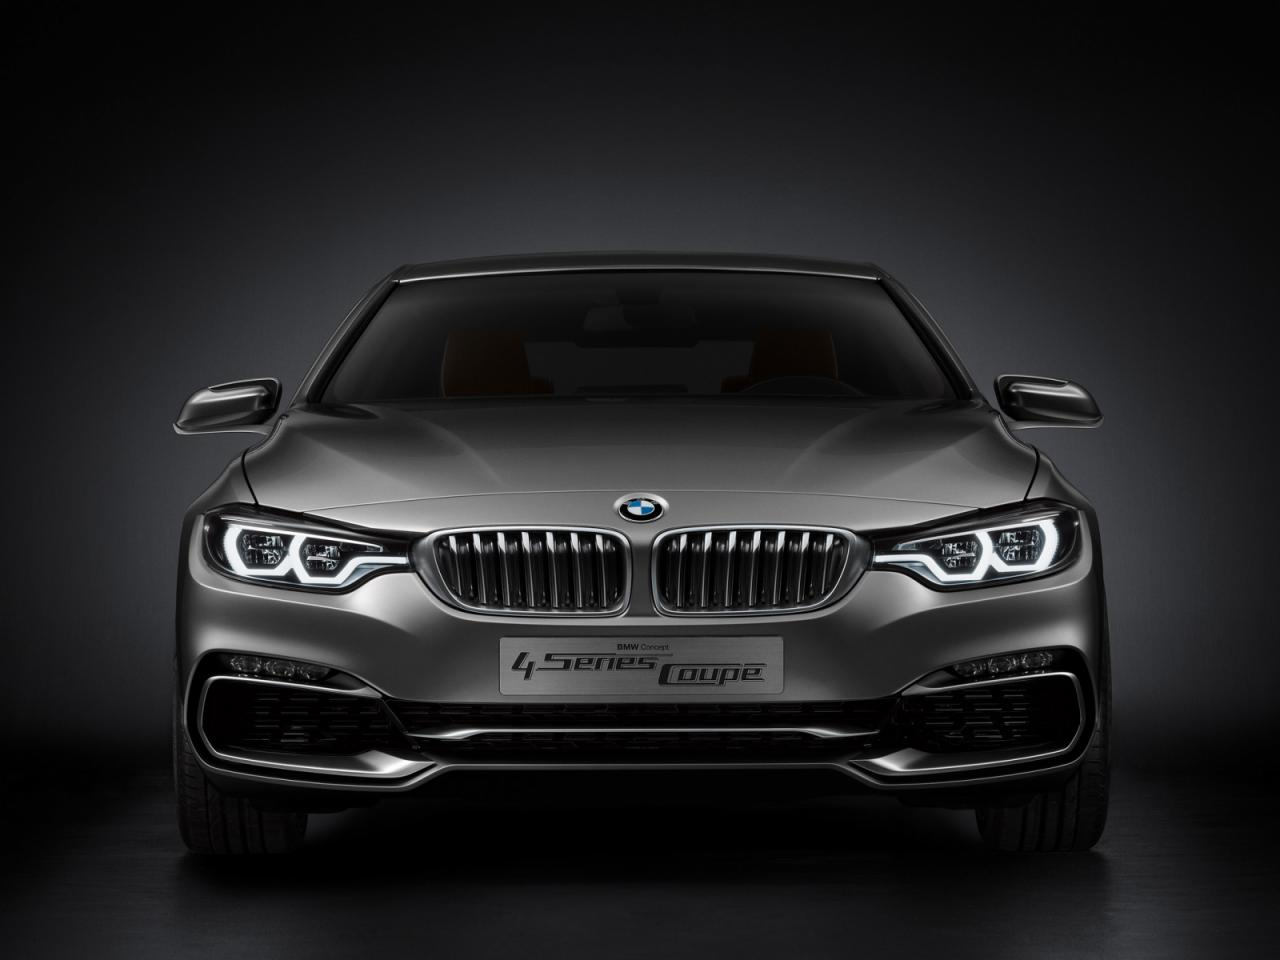 F32 BMW 4 Series Coupe Concept